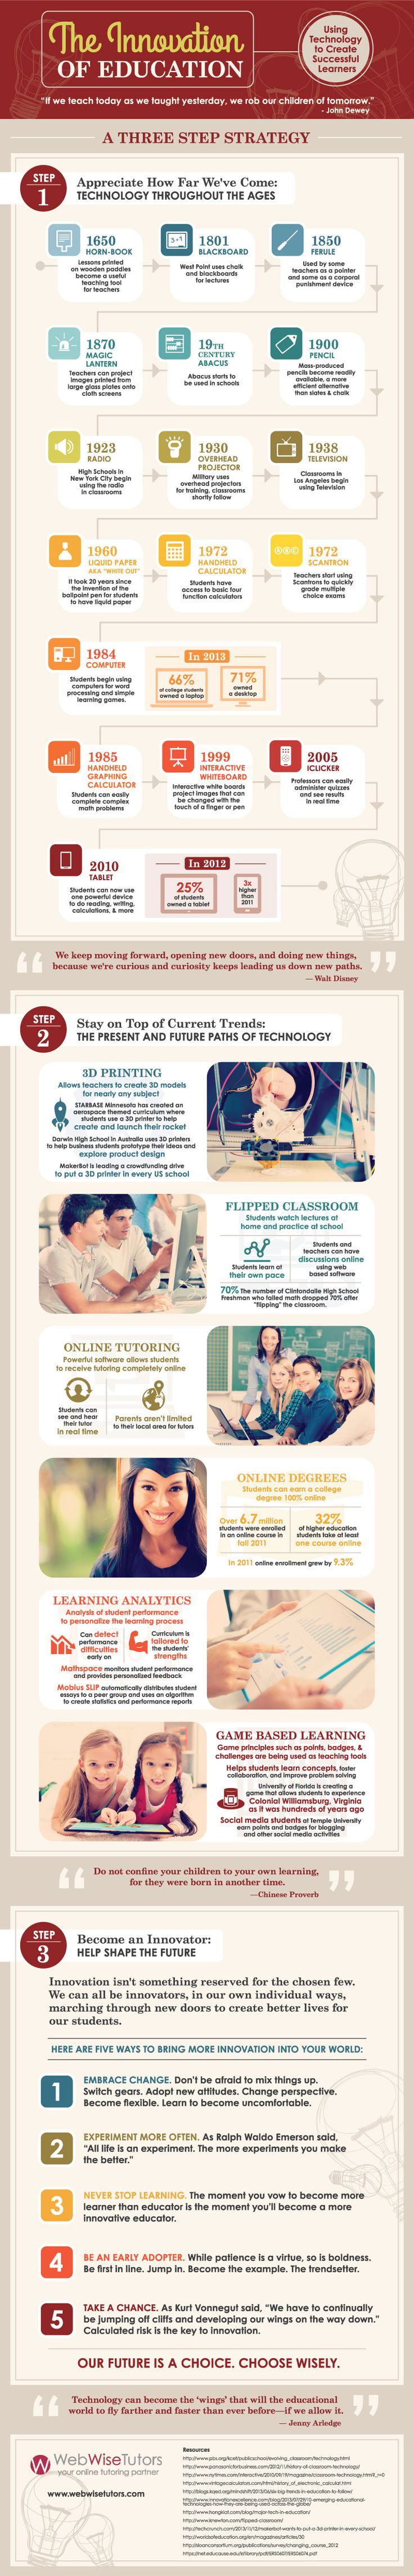 innovation-of-education-infographic